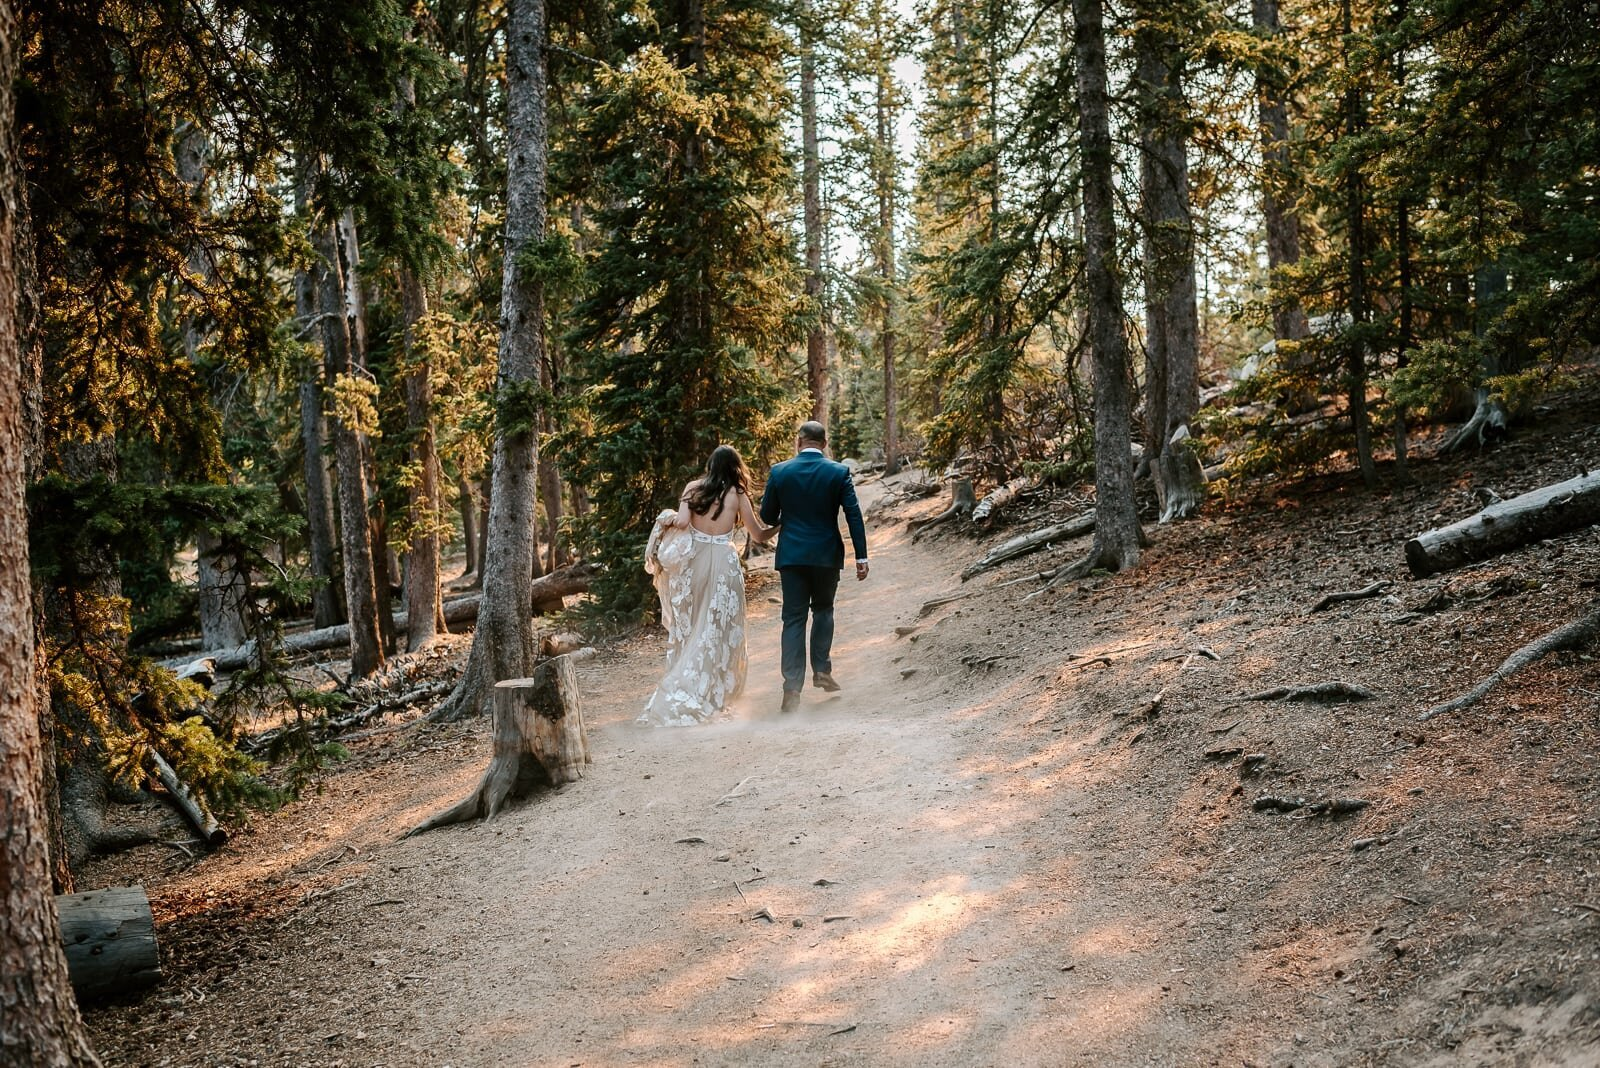 elopement packages for couples eloping in the mountains